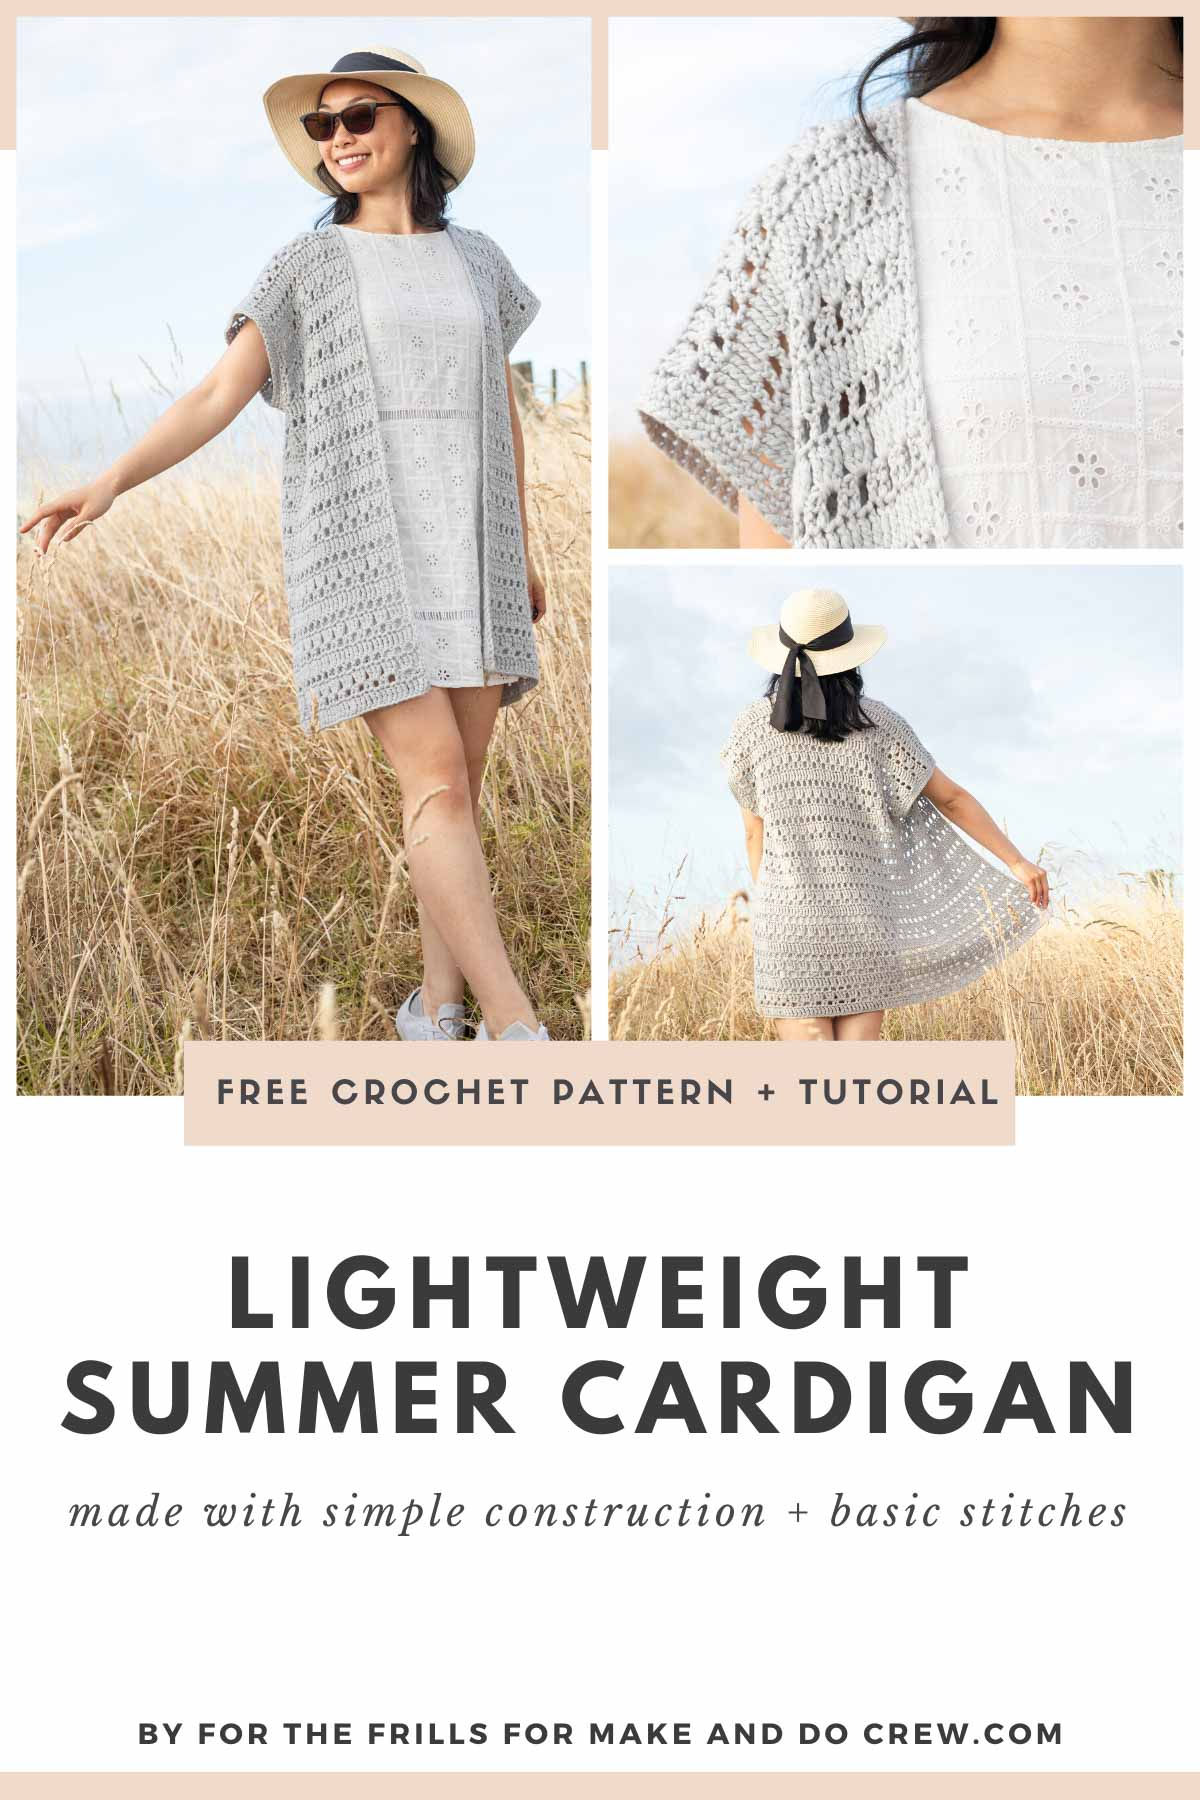 A grid of photos of a short sleeved crochet cardigan made from very easy lace crochet stitches.